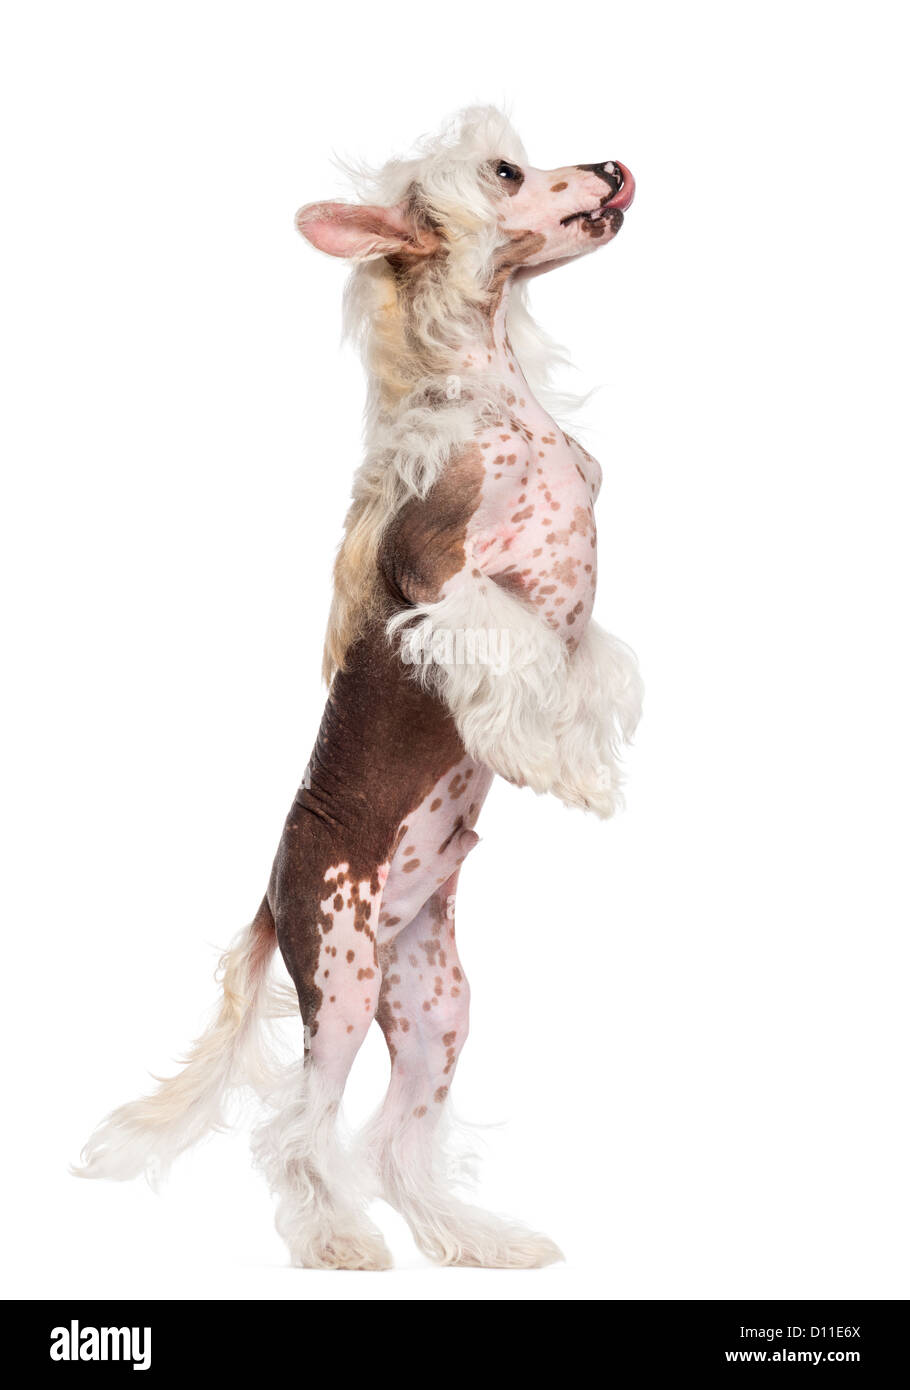 Chinese Crested dog standing on hind legs and looking up against white background - Stock Image